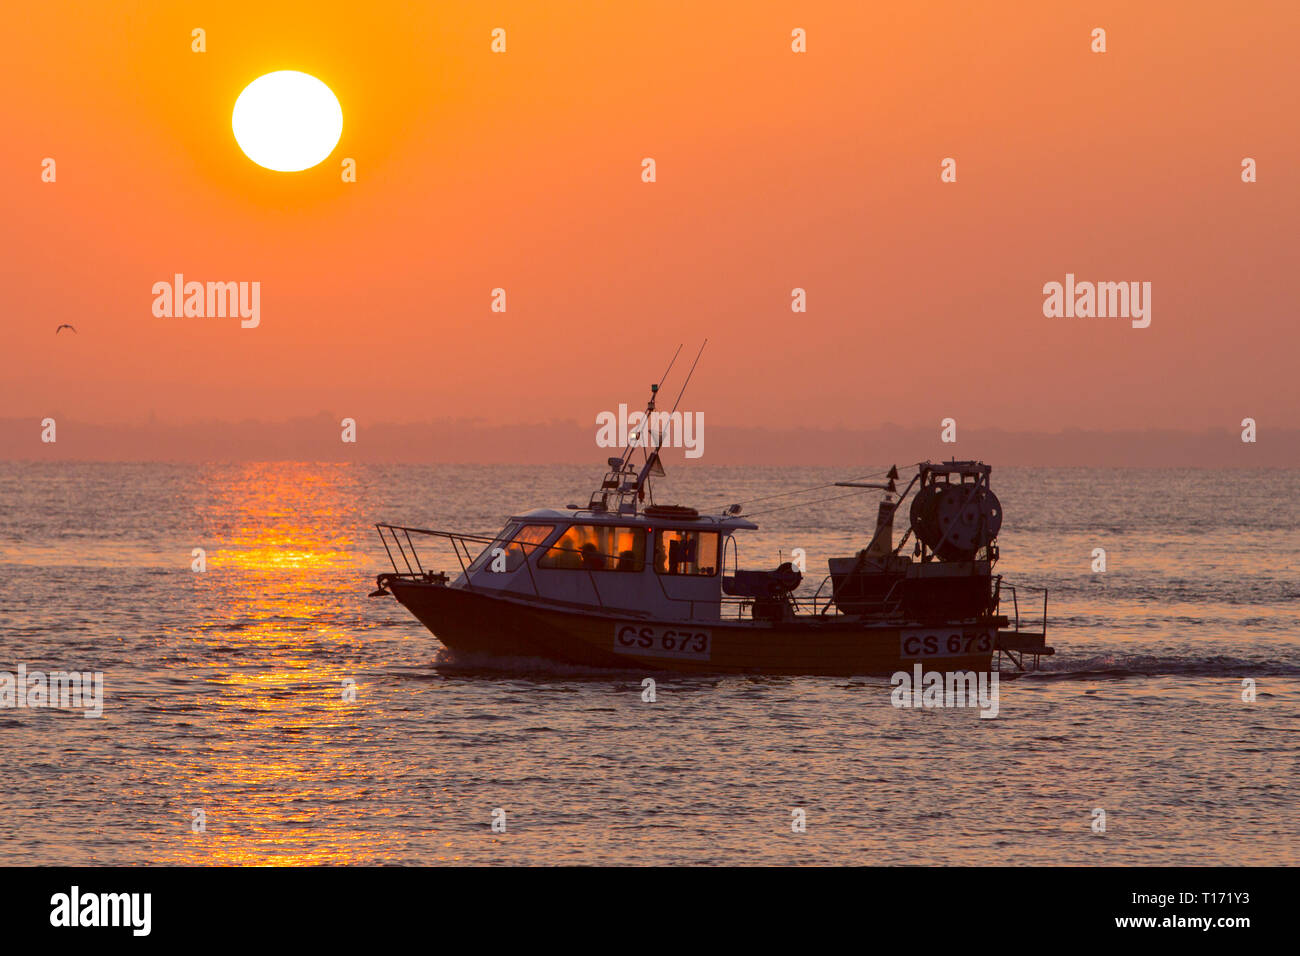 Fishing,boat,lobsters,crabs,oysters,pots,long,line,trawler,sunset,sunrise,The Solent,Cowes,Isle of Wight,England,UK, - Stock Image